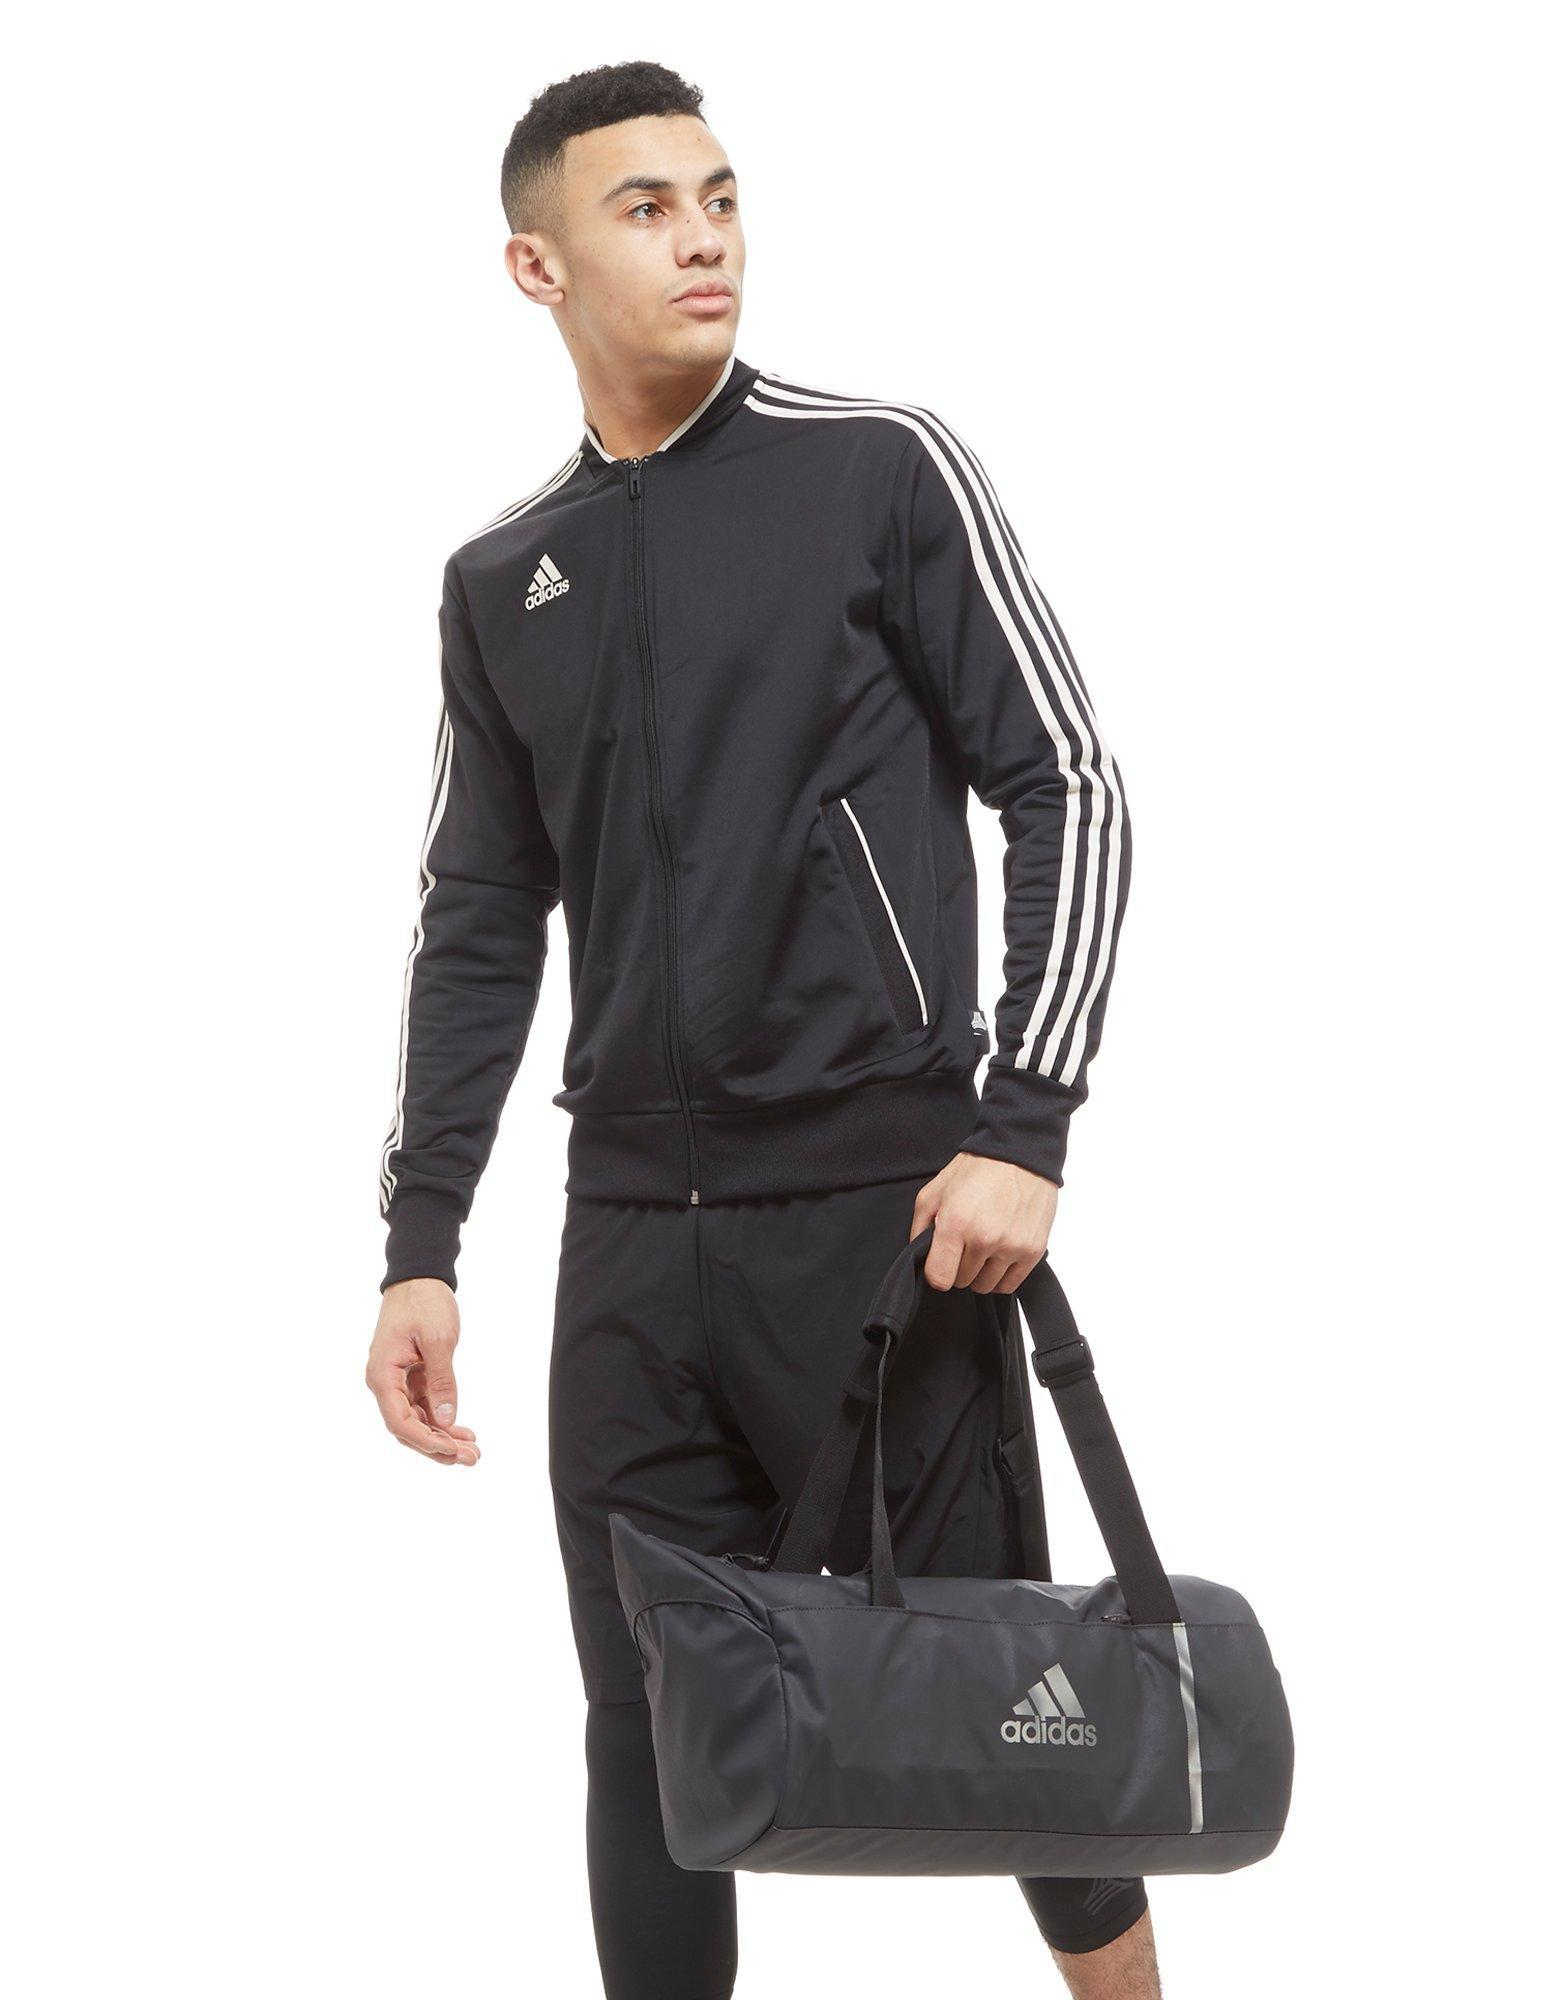 aa73938c32 adidas Convertible Training Duffle Bag Small in Gray for Men - Lyst